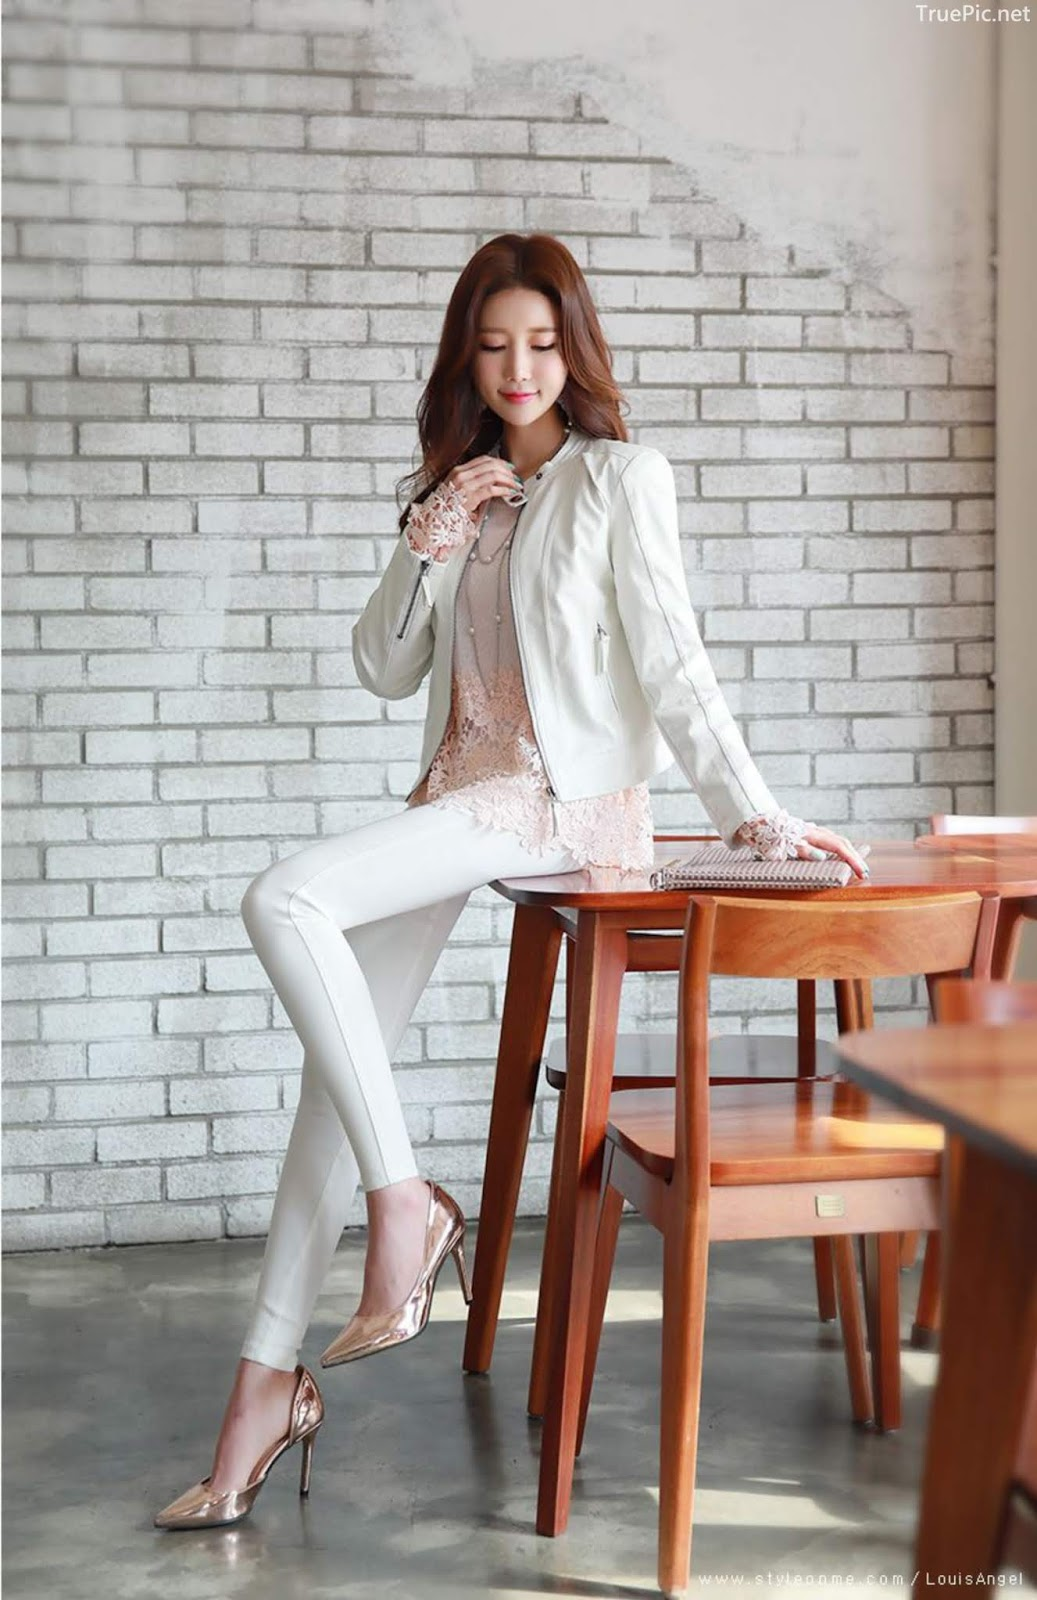 Lee Yeon Jeong - Indoor Photoshoot Collection - Korean fashion model - Part 1 - Picture 7